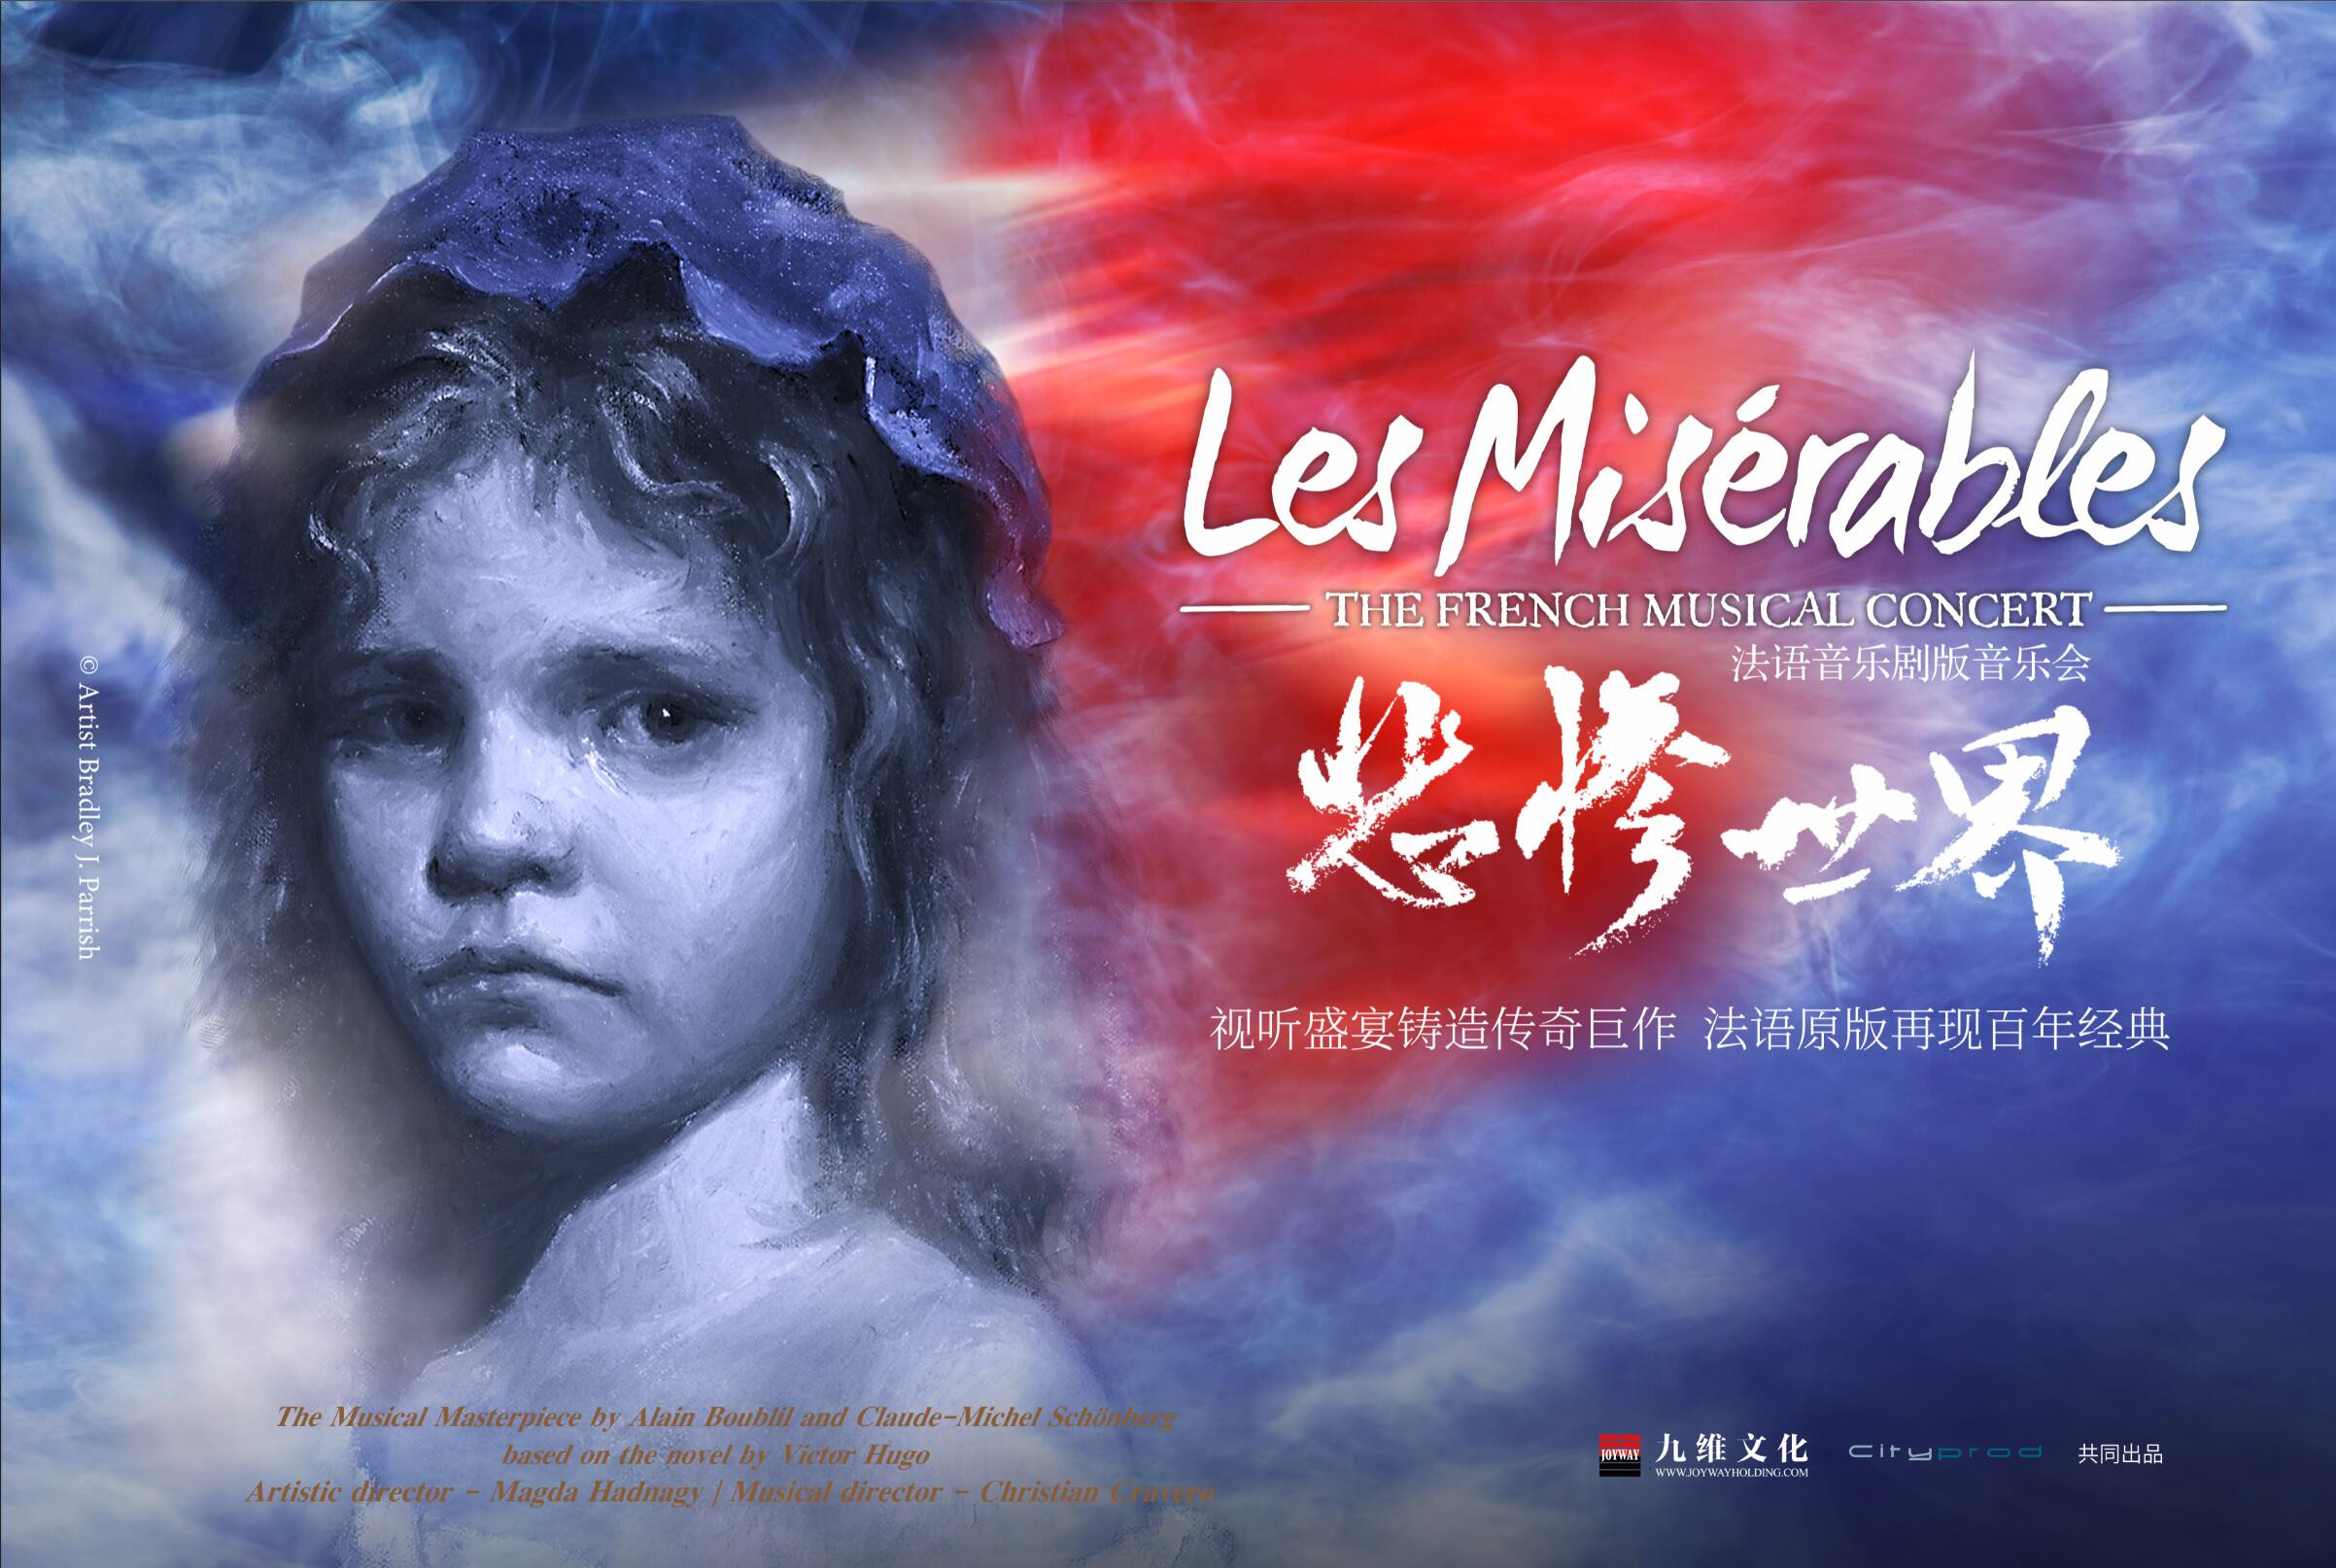 法语音乐剧版音乐会《悲惨世界》LES MISERABLES The French Musical Concert